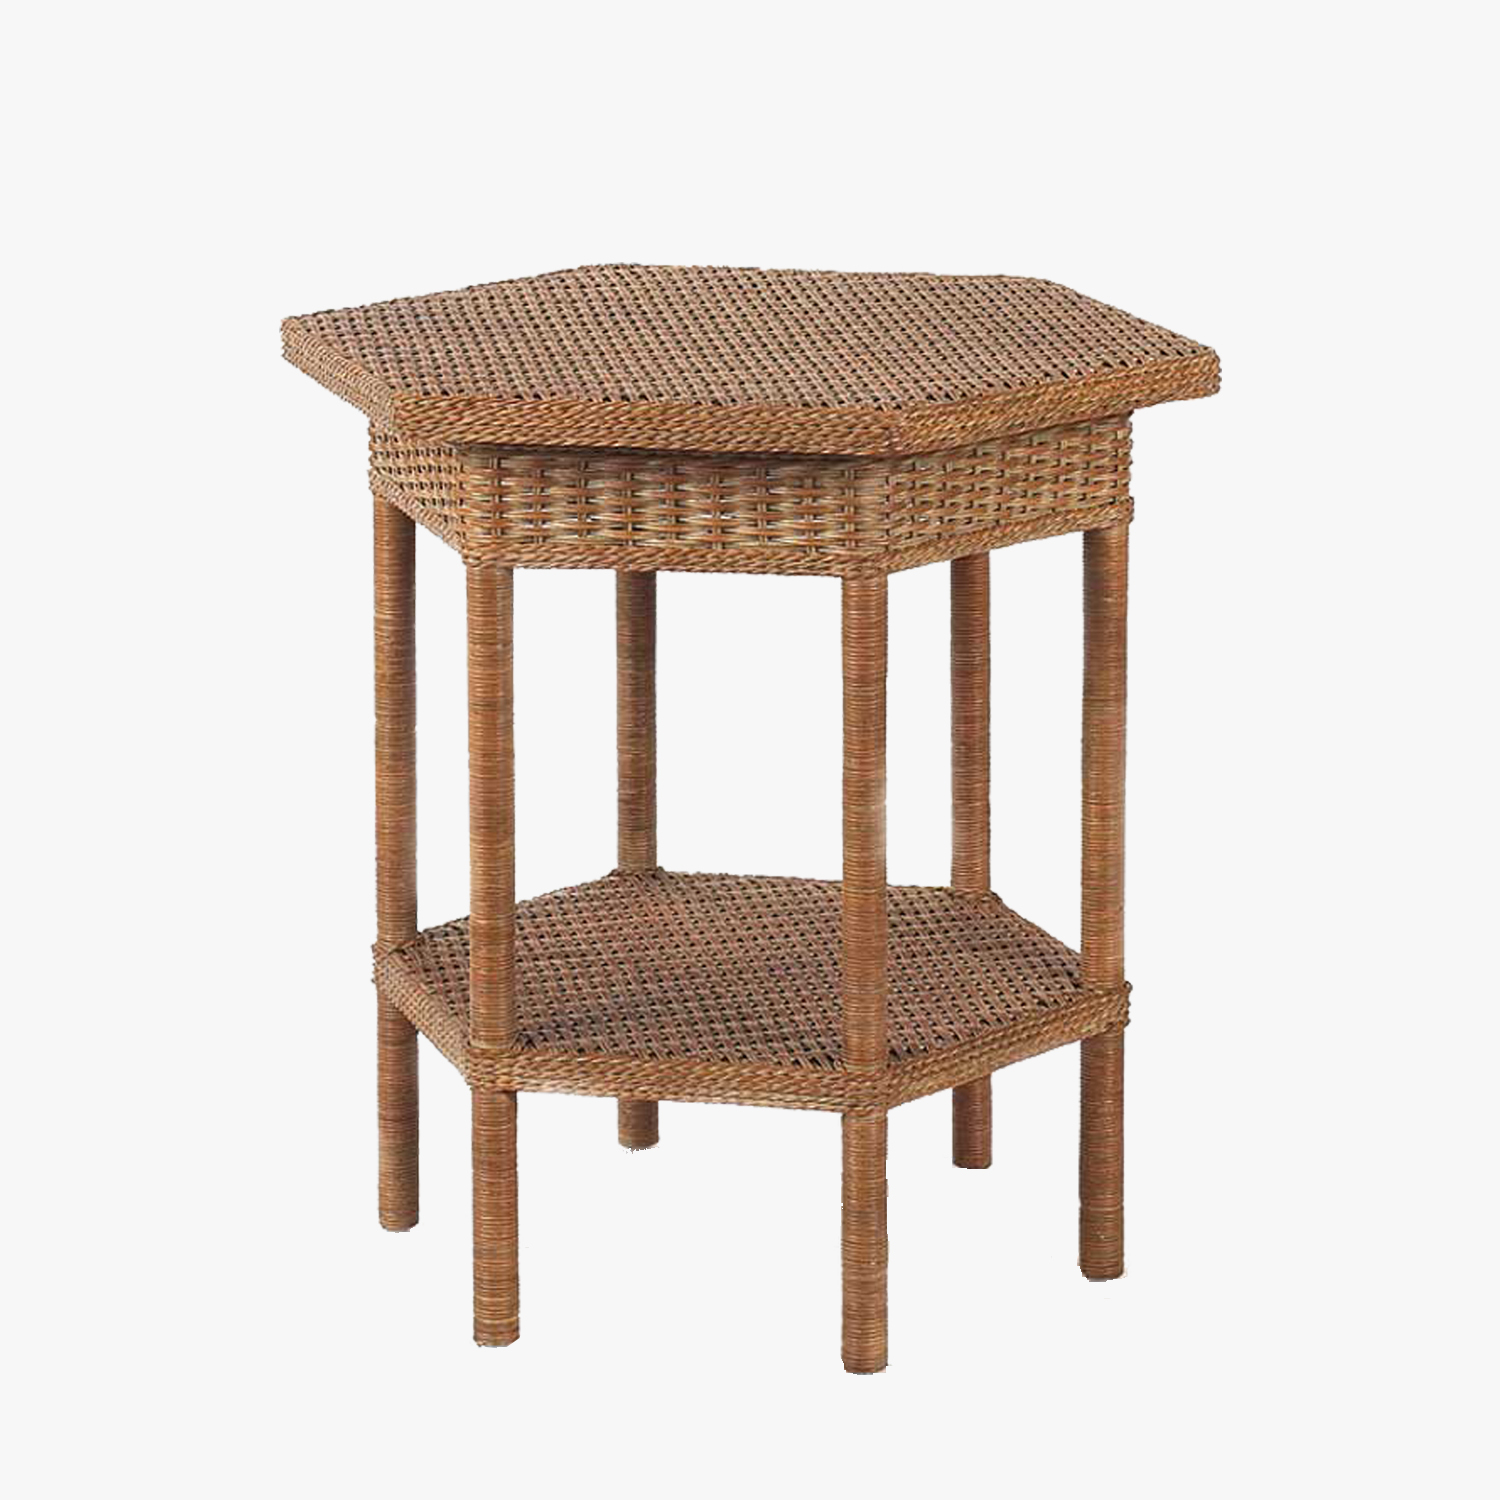 cape cod wicker side table dear keaton hexagon outdoor brown antique green dining room patio bar sets clearance essentials desk painted accent tables glass lamps for bedroom